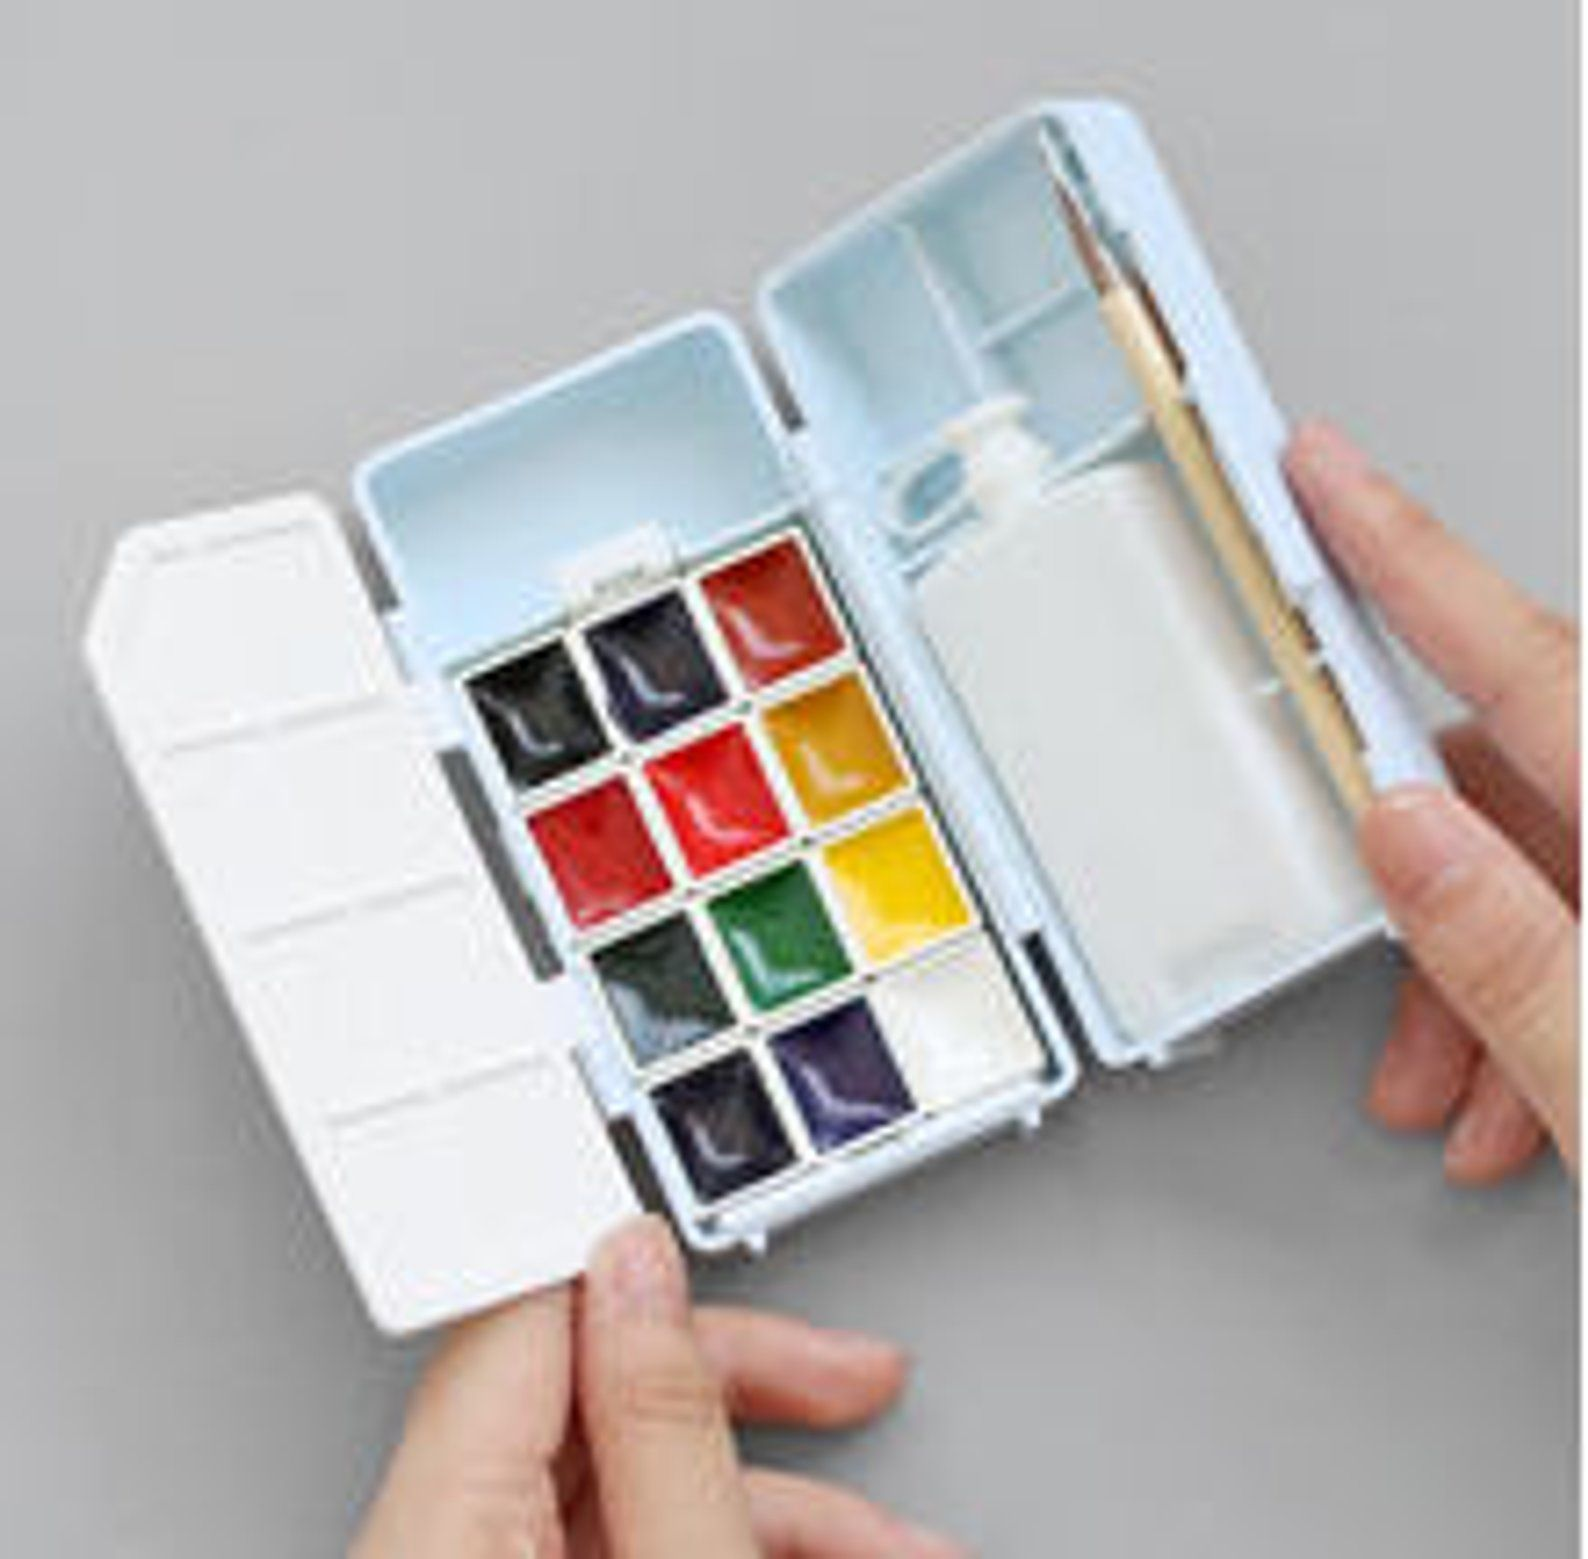 Kuretake Travel Paint Set Travel Paint Pans Watercolor Palette